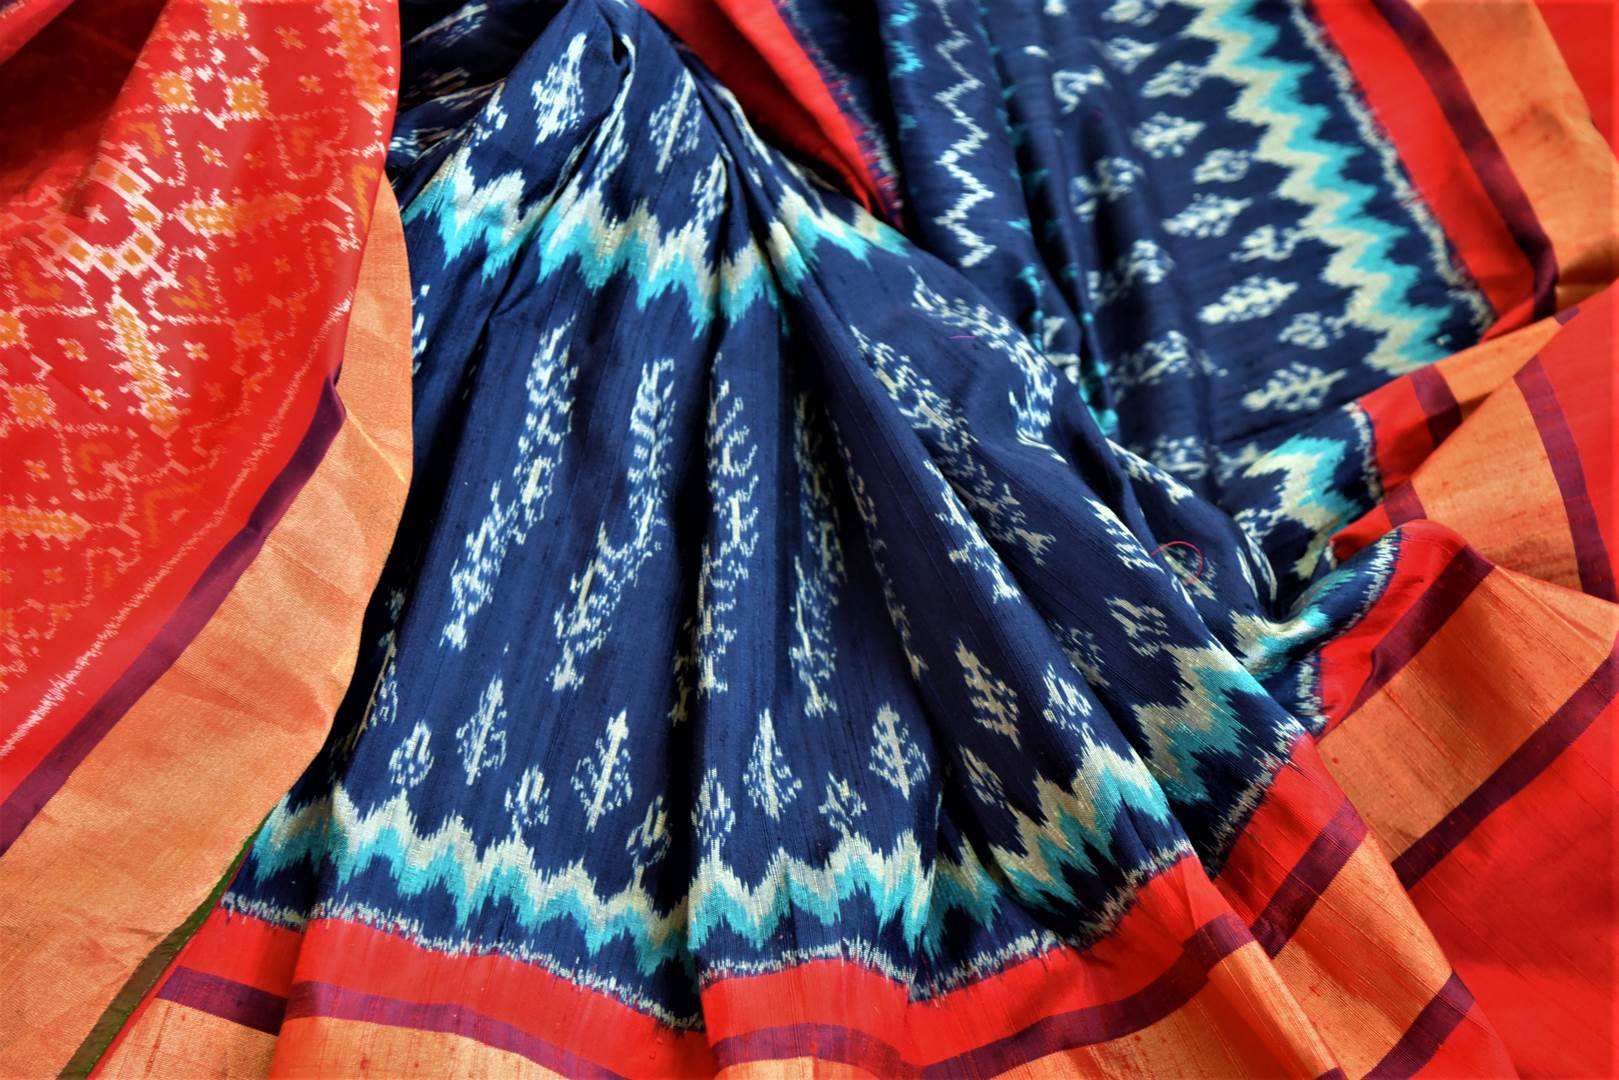 Buy beautiful blue patola silk saree online in USA with red border and embroidered red ikkat blouse. Be a vision of tradition and elegance on weddings and festivals with exquisite silk sarees, patola sarees, handwoven sarees from Pure Elegance Indian clothing store in USA.-details